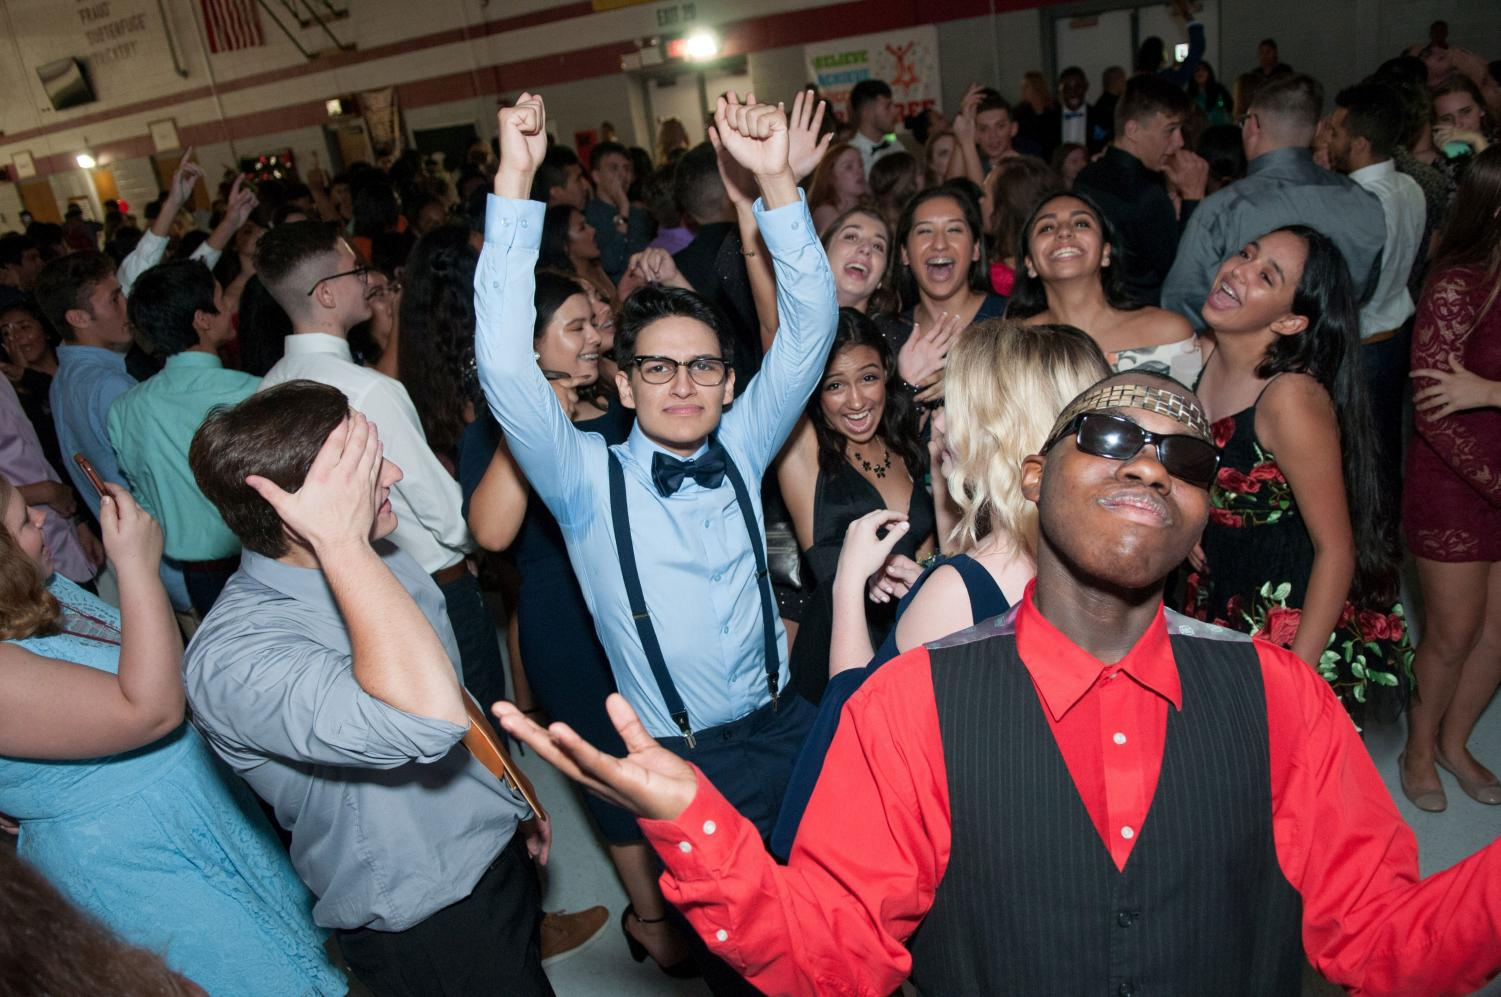 Students enjoy their own unique styles at the 2017 Homecoming Dance.